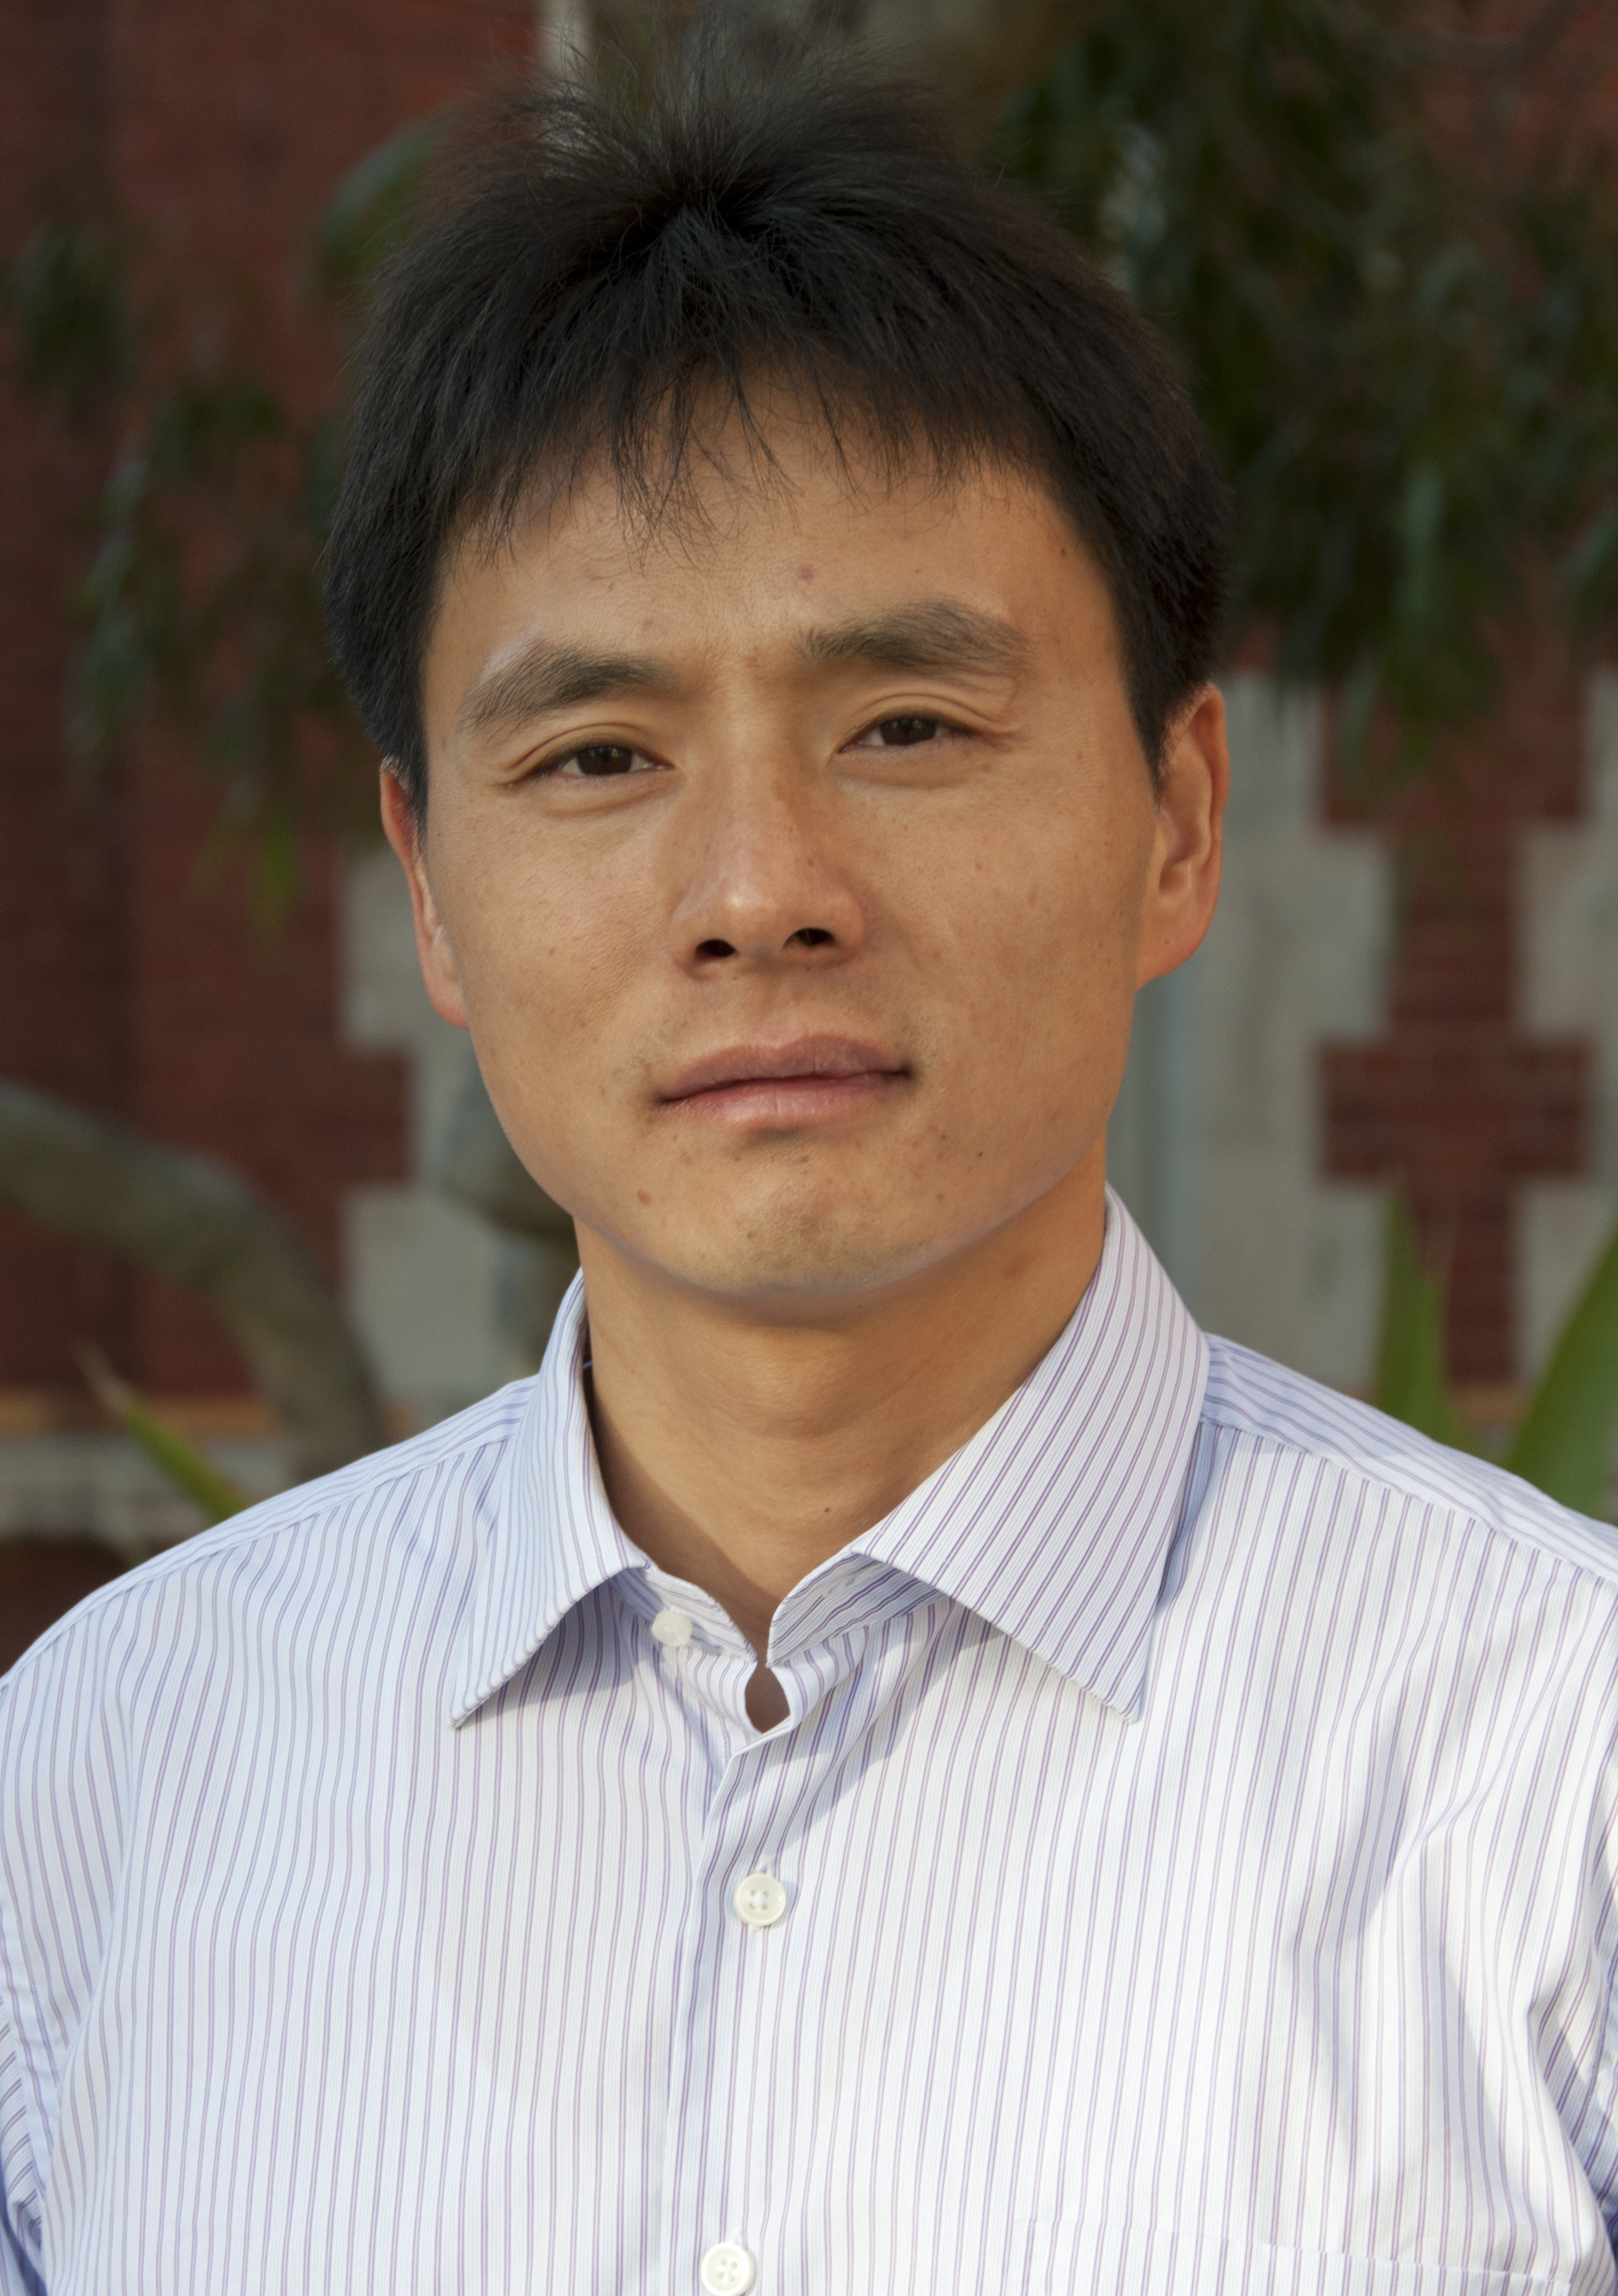 Profile picture of Yi Yang